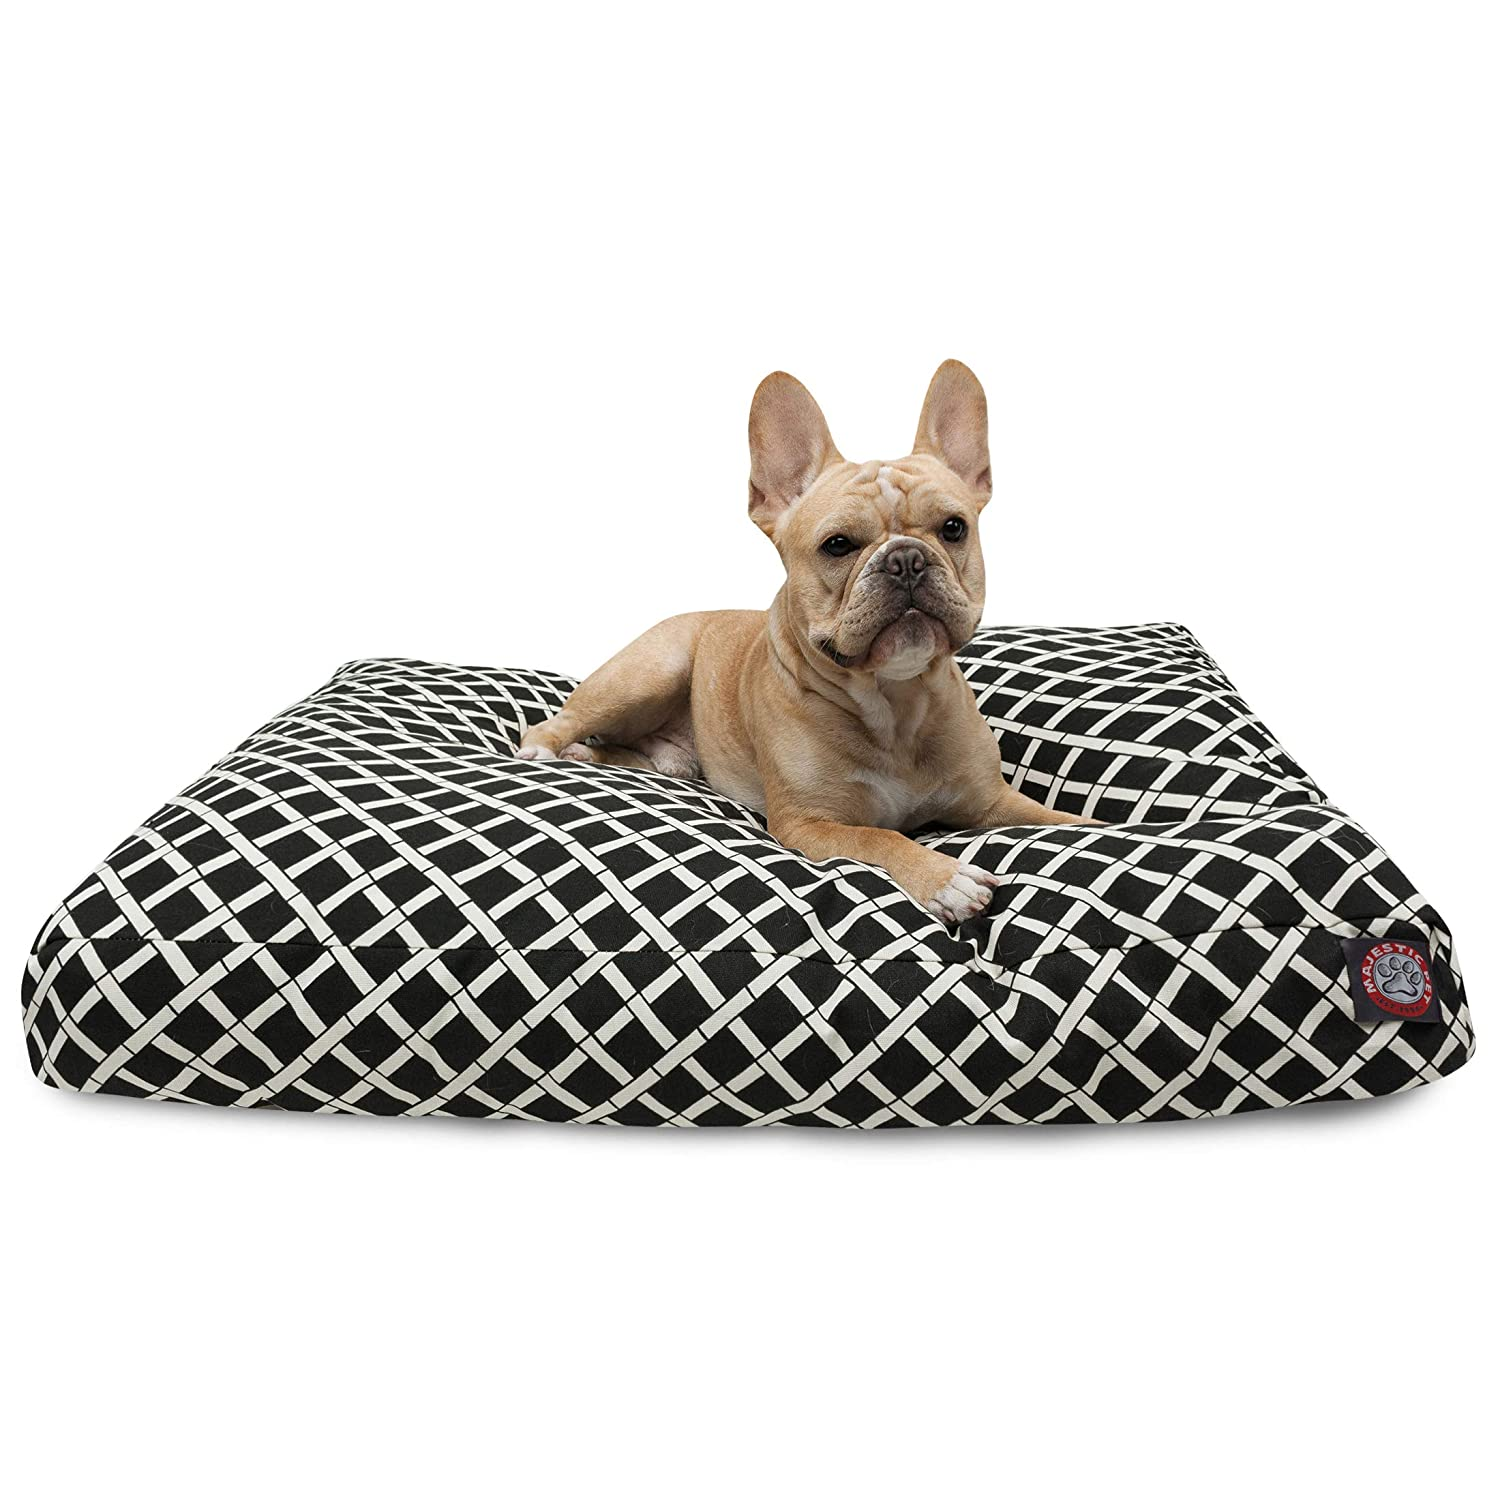 Black MediumMajestic Pet Burnt orange Bamboo Large Rectangle Indoor Outdoor Pet Dog Bed With Removable Washable Cover Products